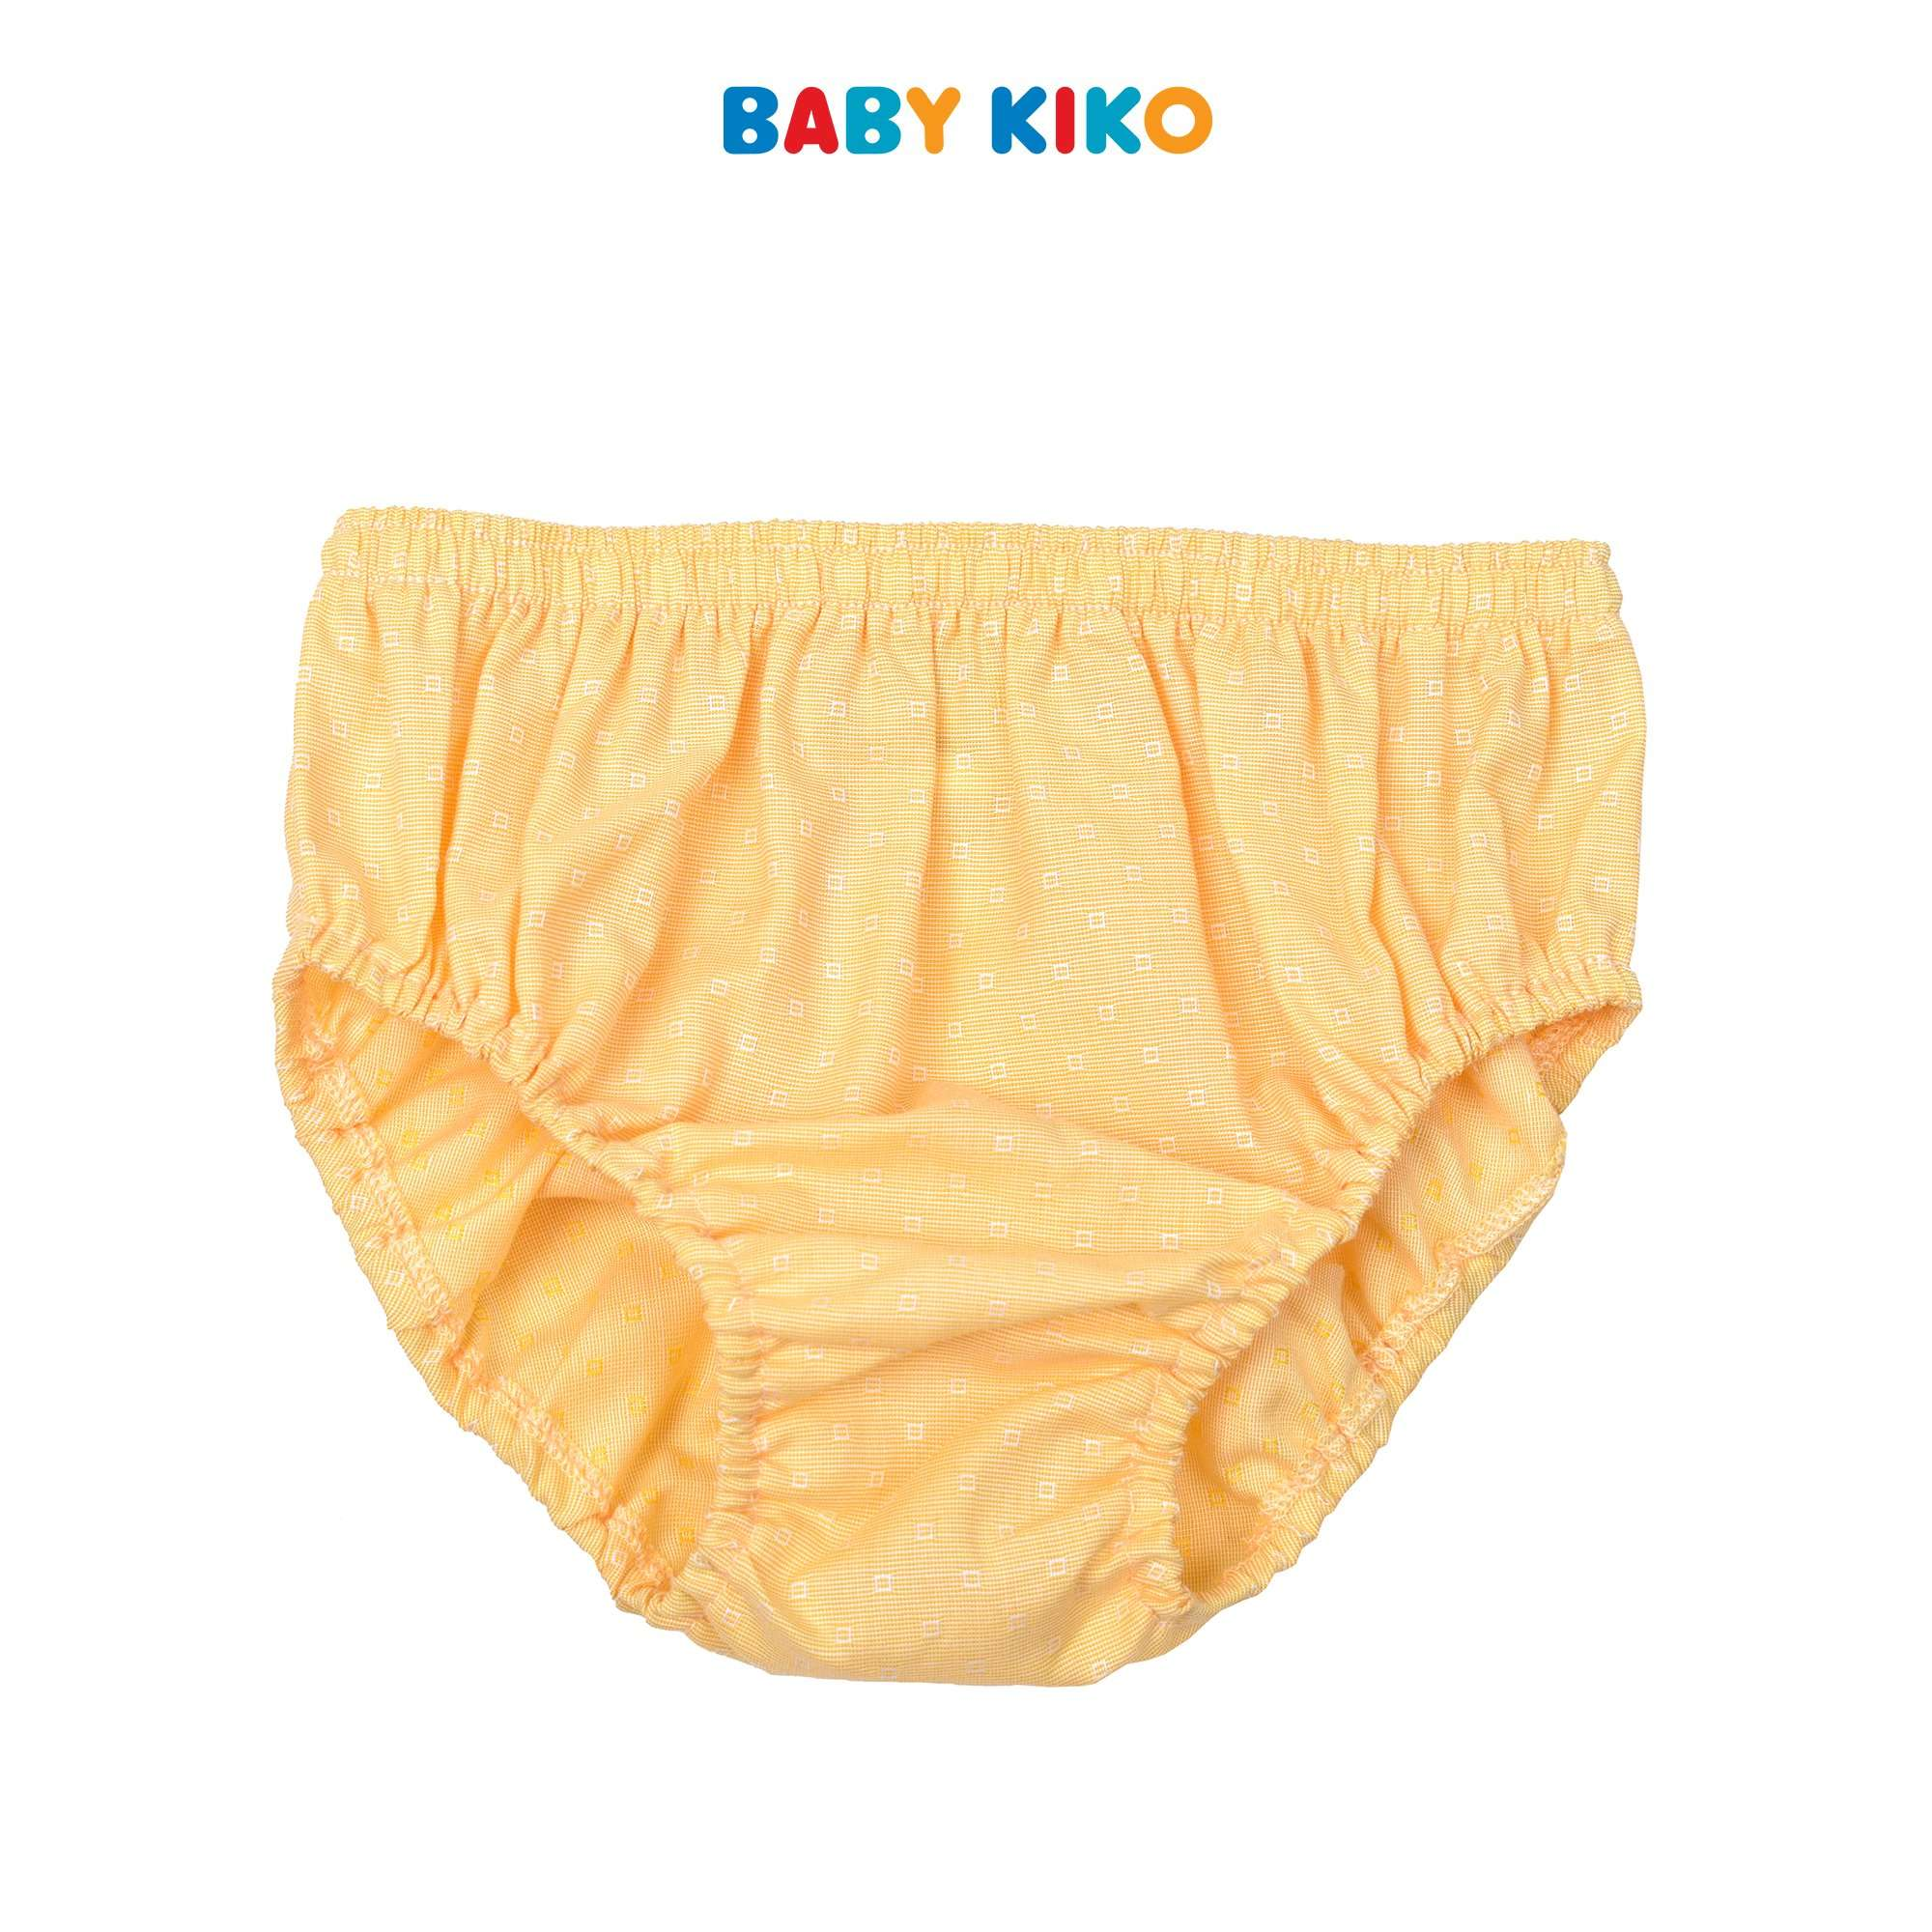 Baby KIKO Baby Girl Sleeveless Dress- Yellow 310207-313 : Buy Baby KIKO online at CMG.MY